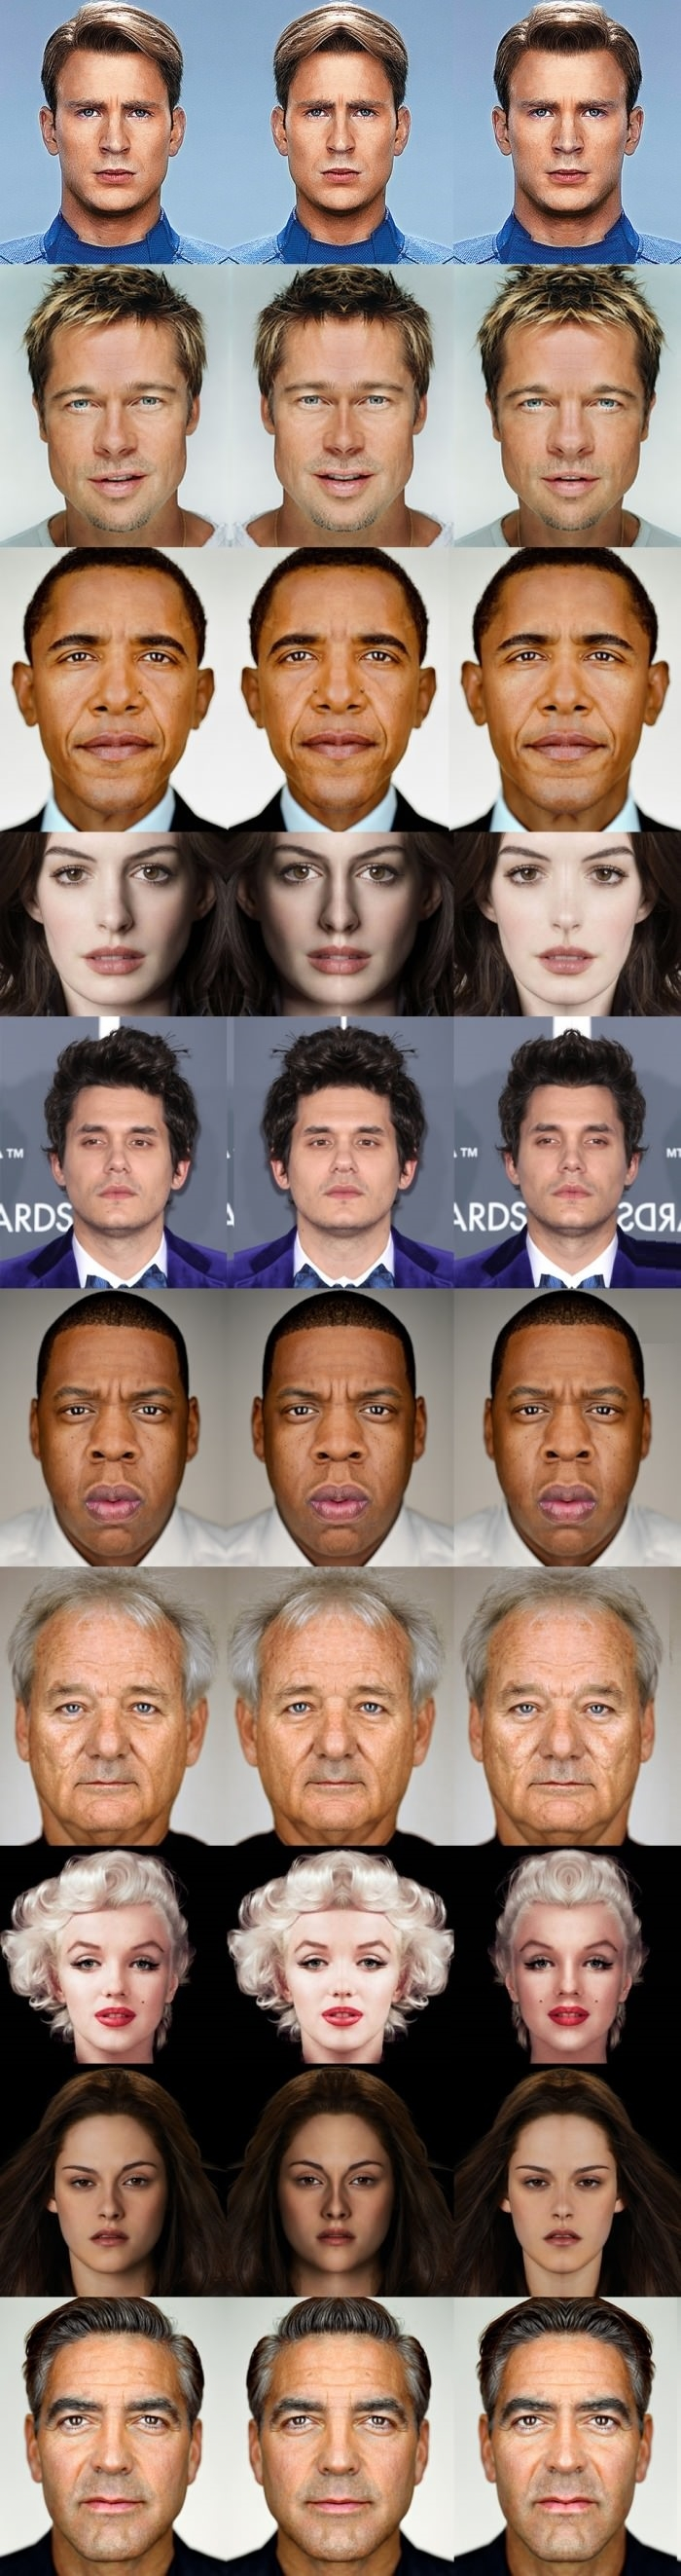 Celeb-facial-symmetry